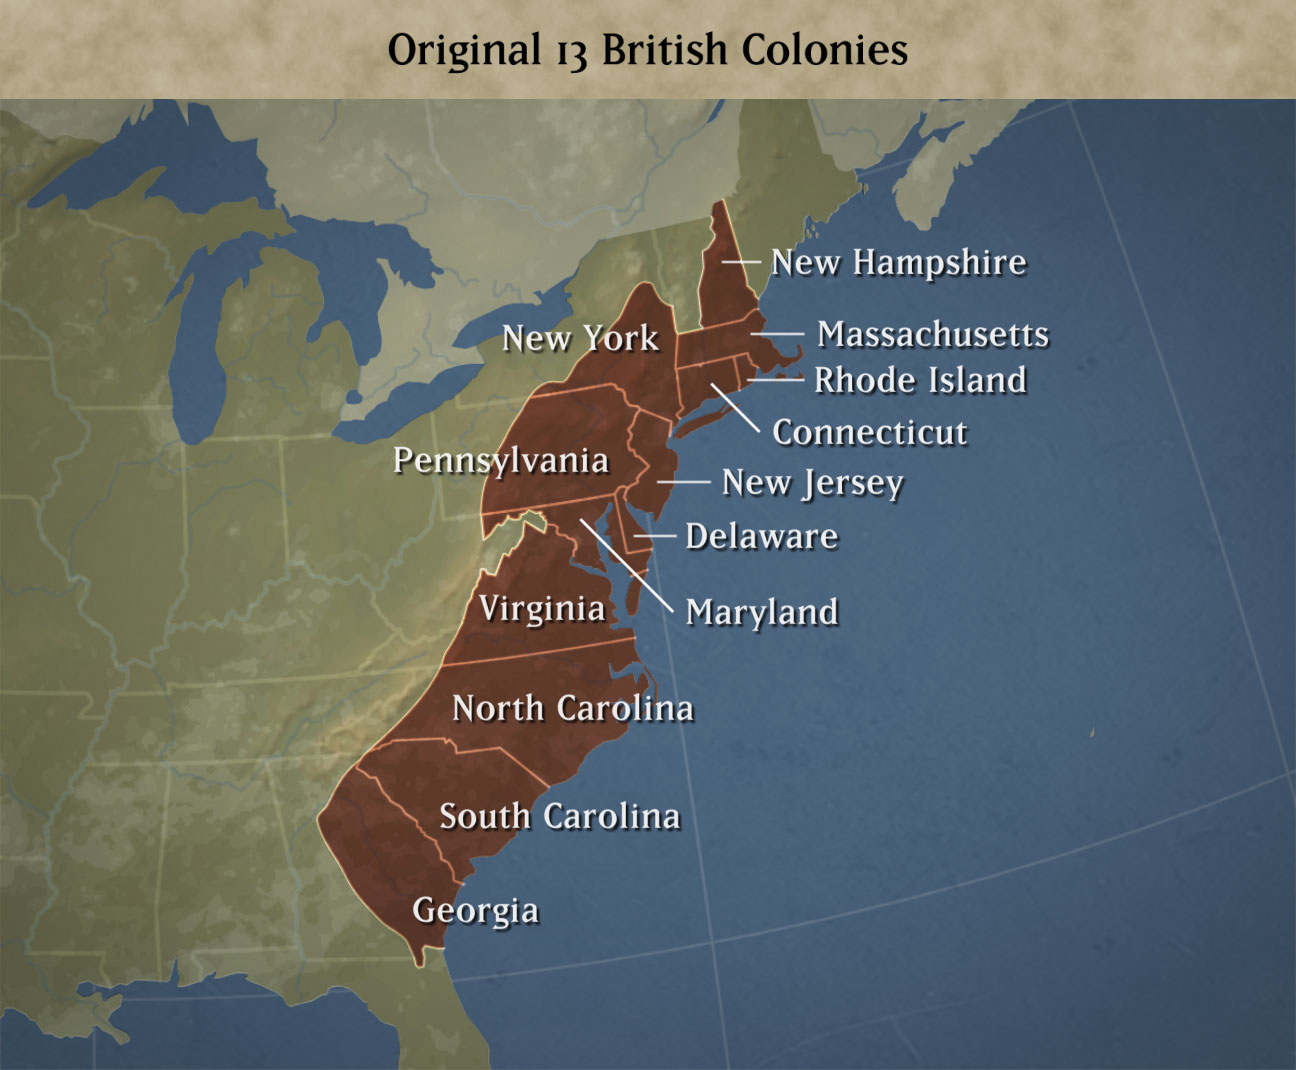 how colonies in america unified Basically 2 reasons: first, the 13 english colonies were geographically a single entity whose members actually unified before their independence no other country's colonies were so close together geographically that they could form a similar uni.